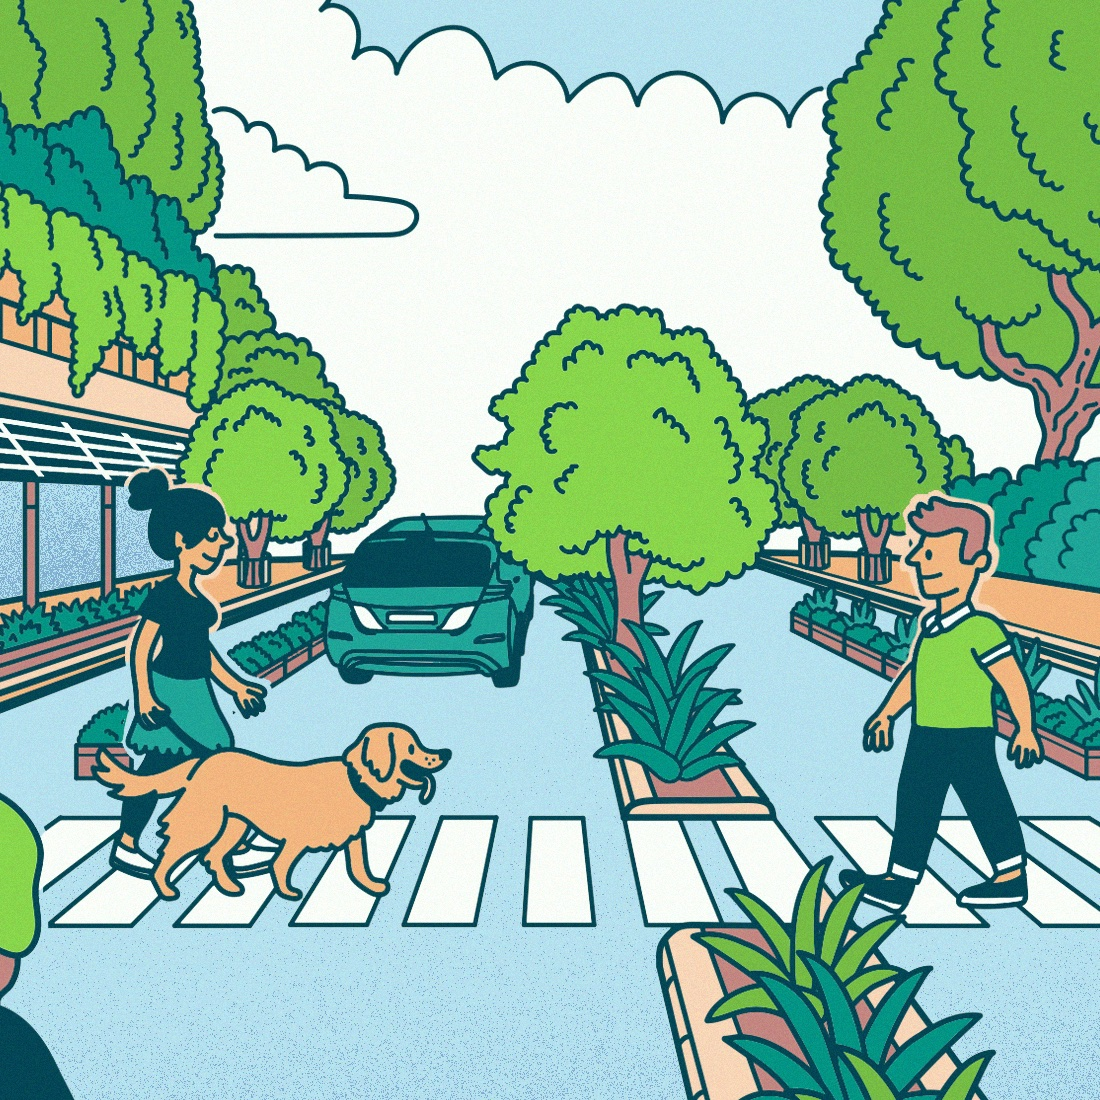 Artist impression of Adelaide as a National Park City. A woman, a man, and a dog cross the street. Street verges are full of greenery. An electric car drives away in the distance.